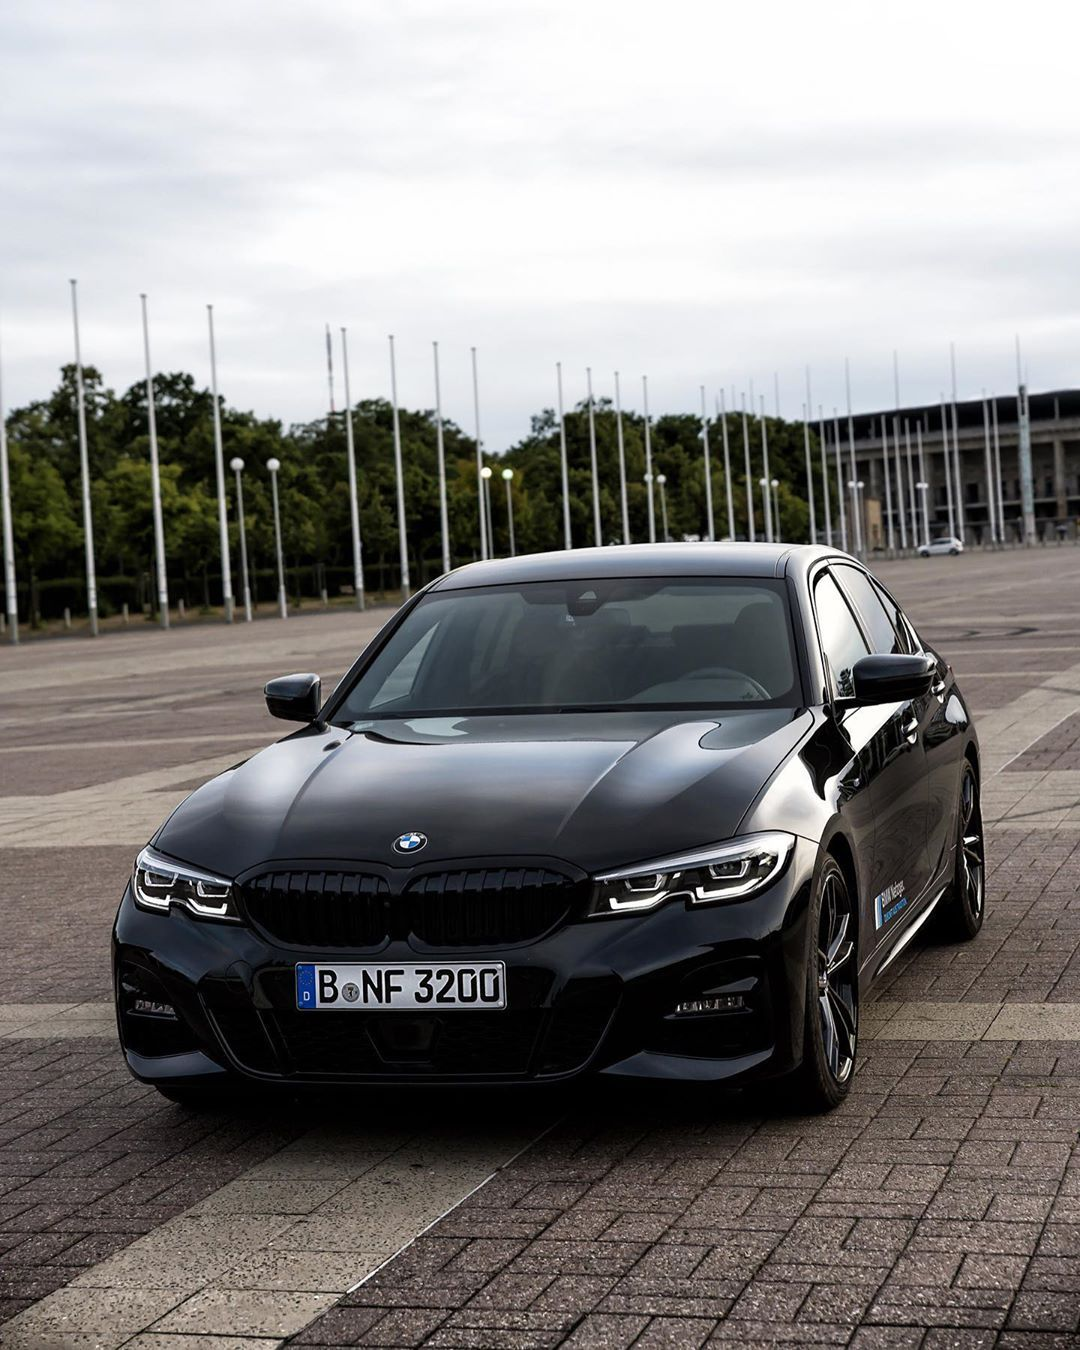 Ad Werbung All Black Bmw 3 Series G20 What Do You Think